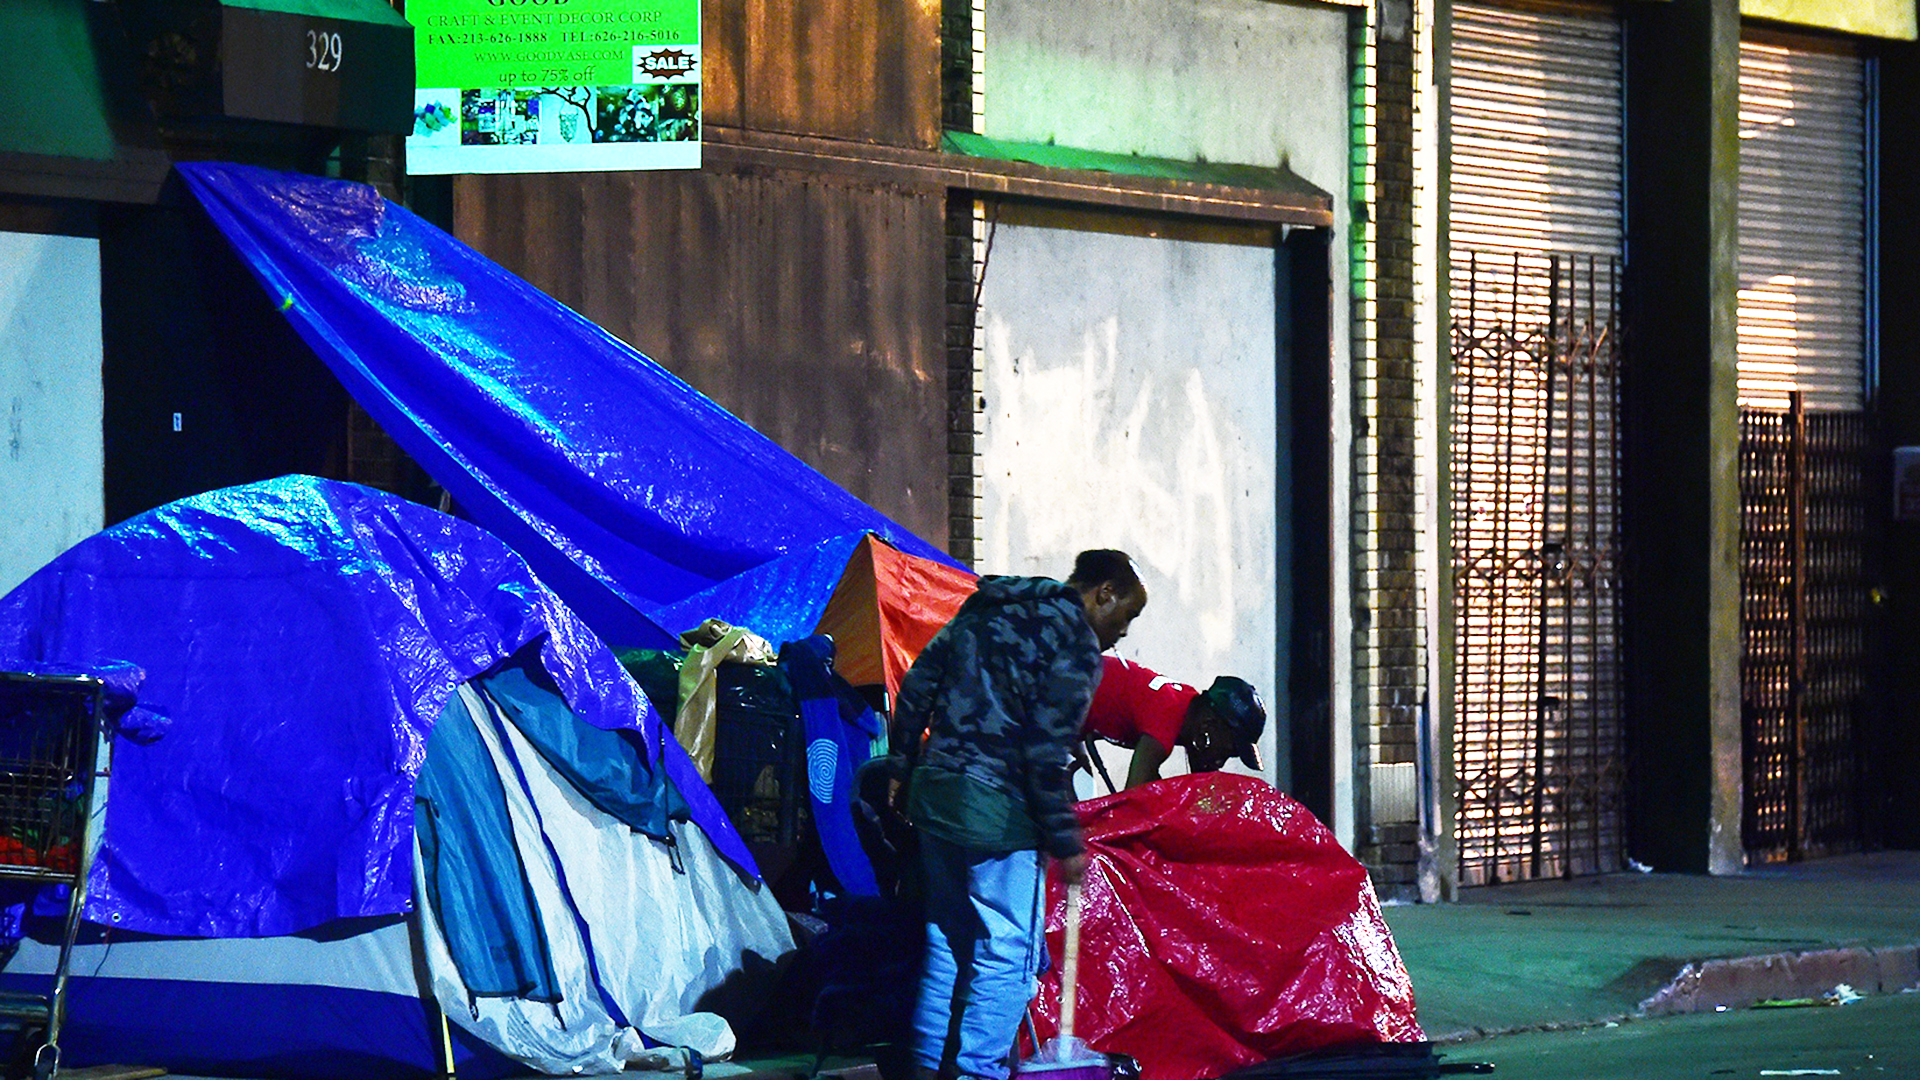 homelessness in the u s Commentary and archival information about homeless persons from the new york times there are far too few psychiatric beds in the united states, researchers say.